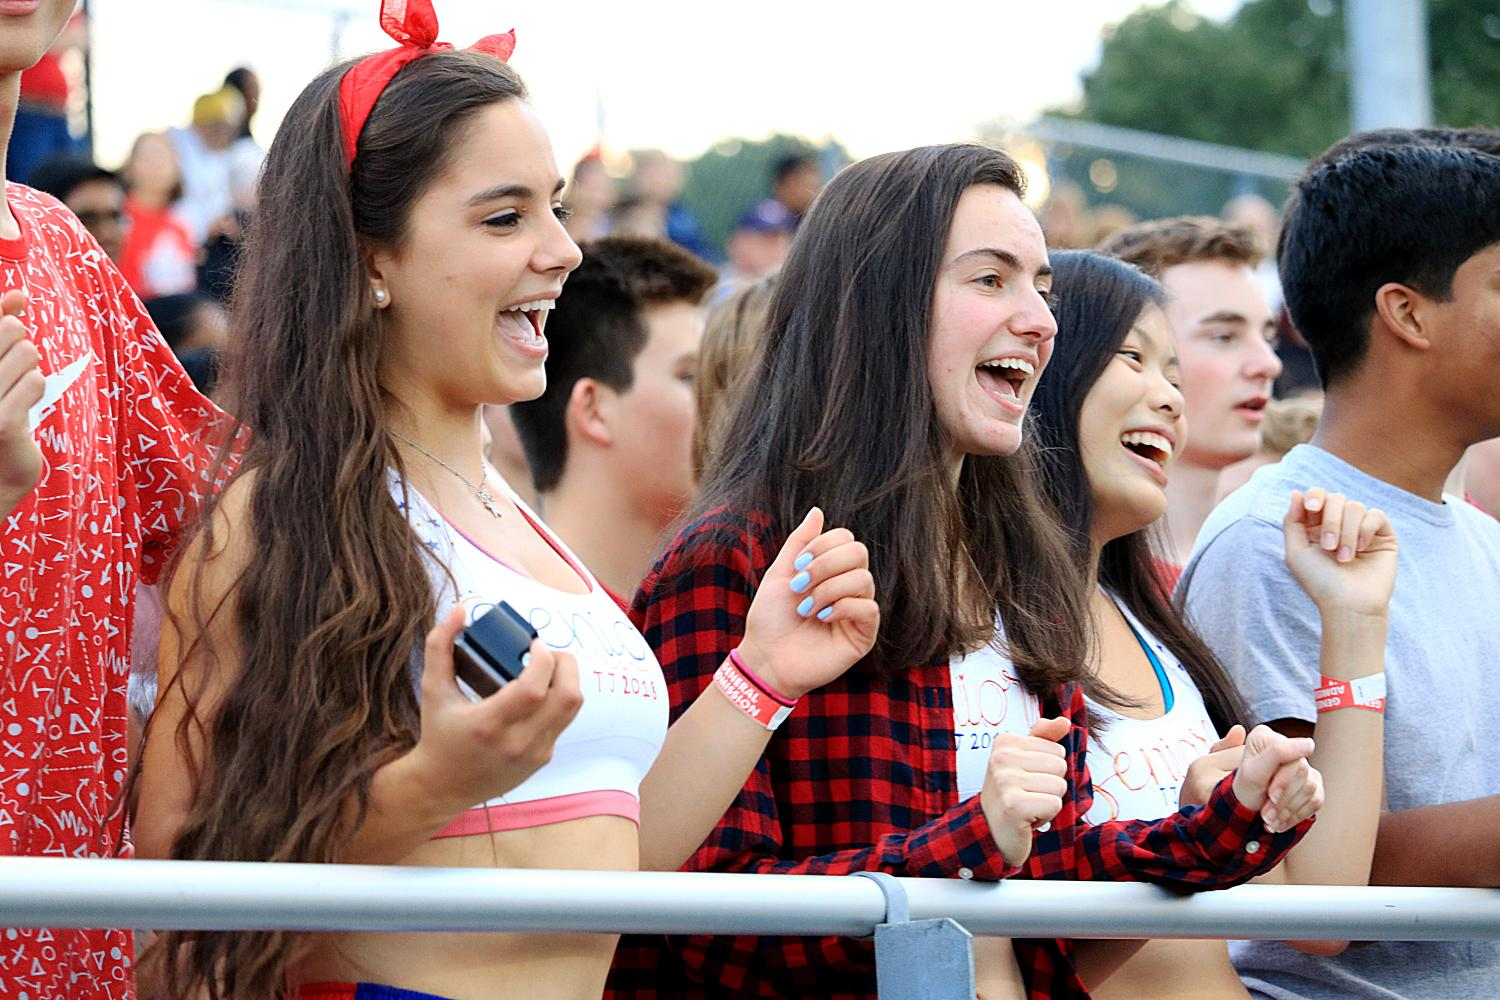 From left to right: Seniors Artemis Veizi, Mara Casebeer, and Jessica Ly cheer on the football team from the stadium.